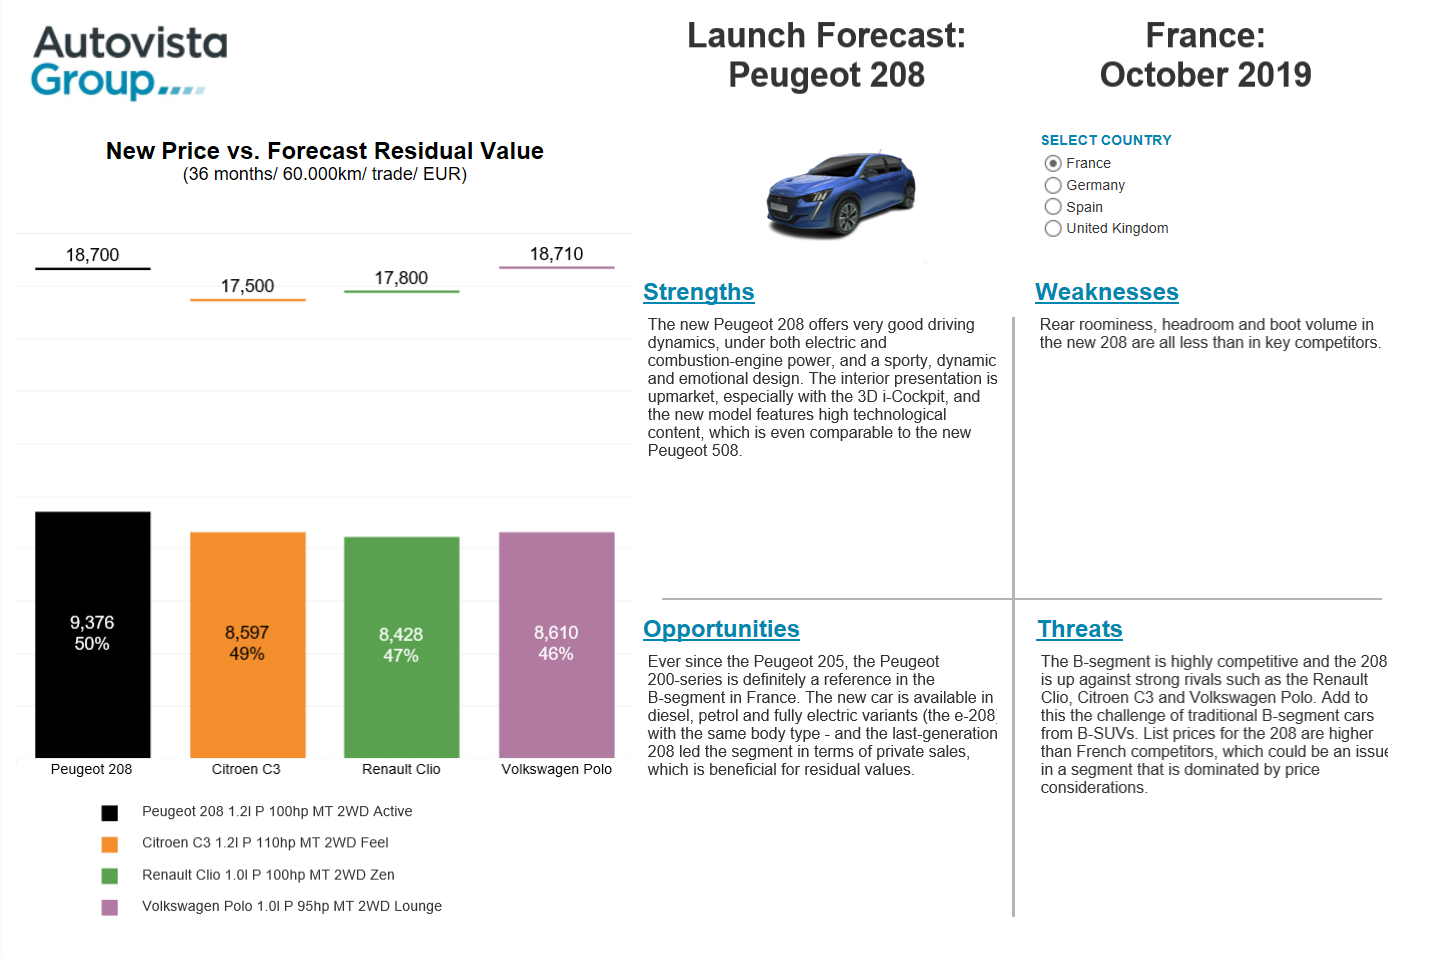 Launch forecast - Peugeot 208